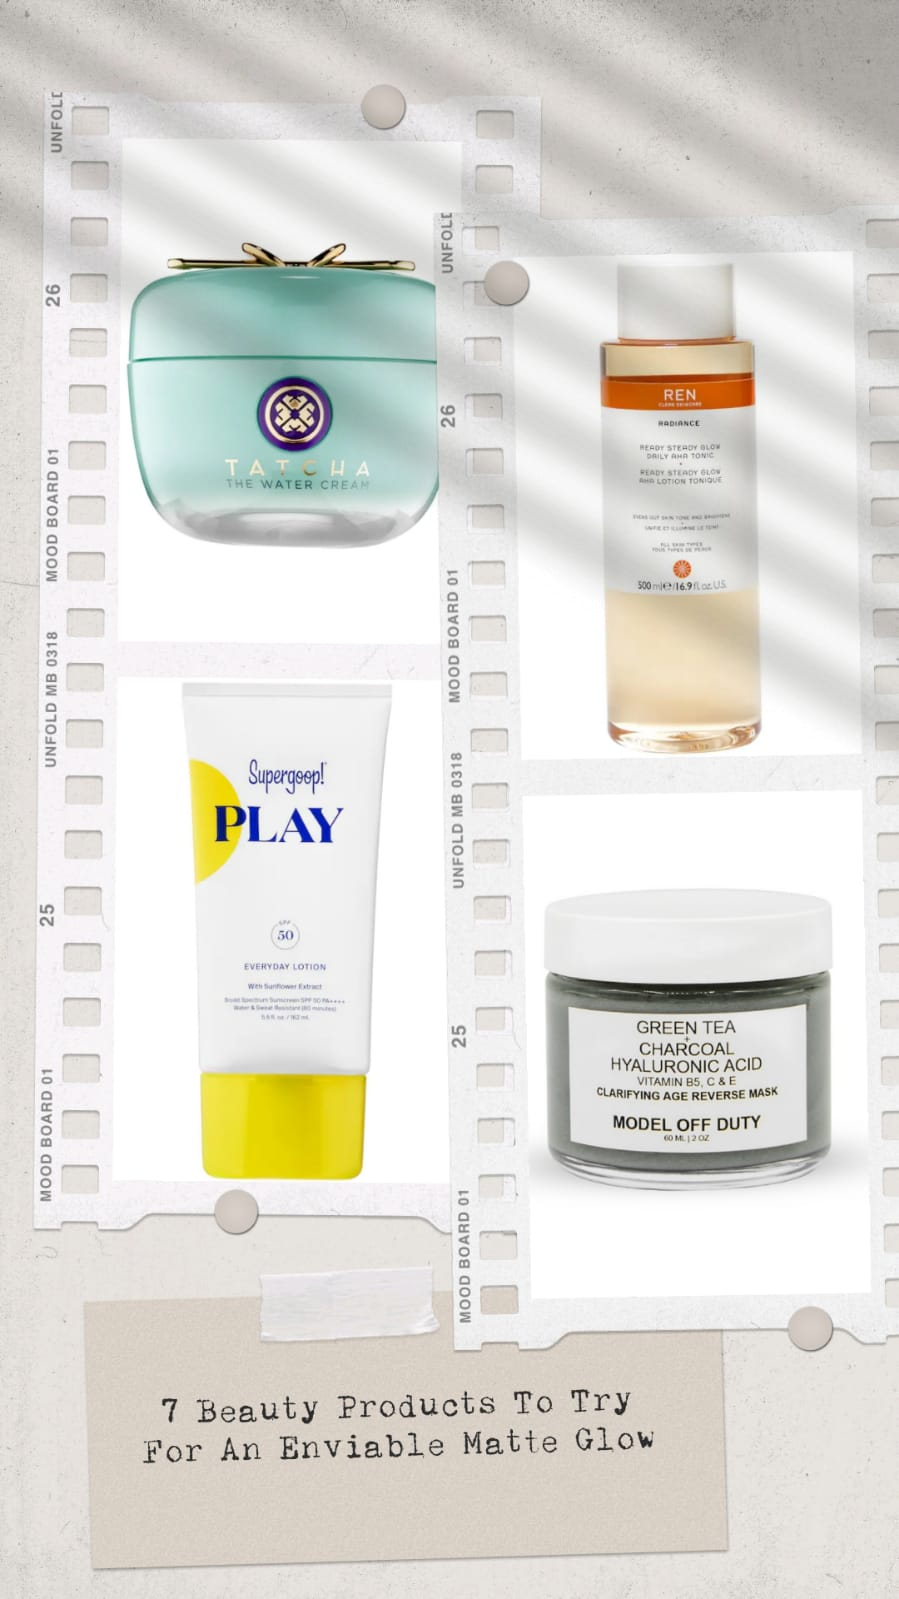 glow-giving beauty products